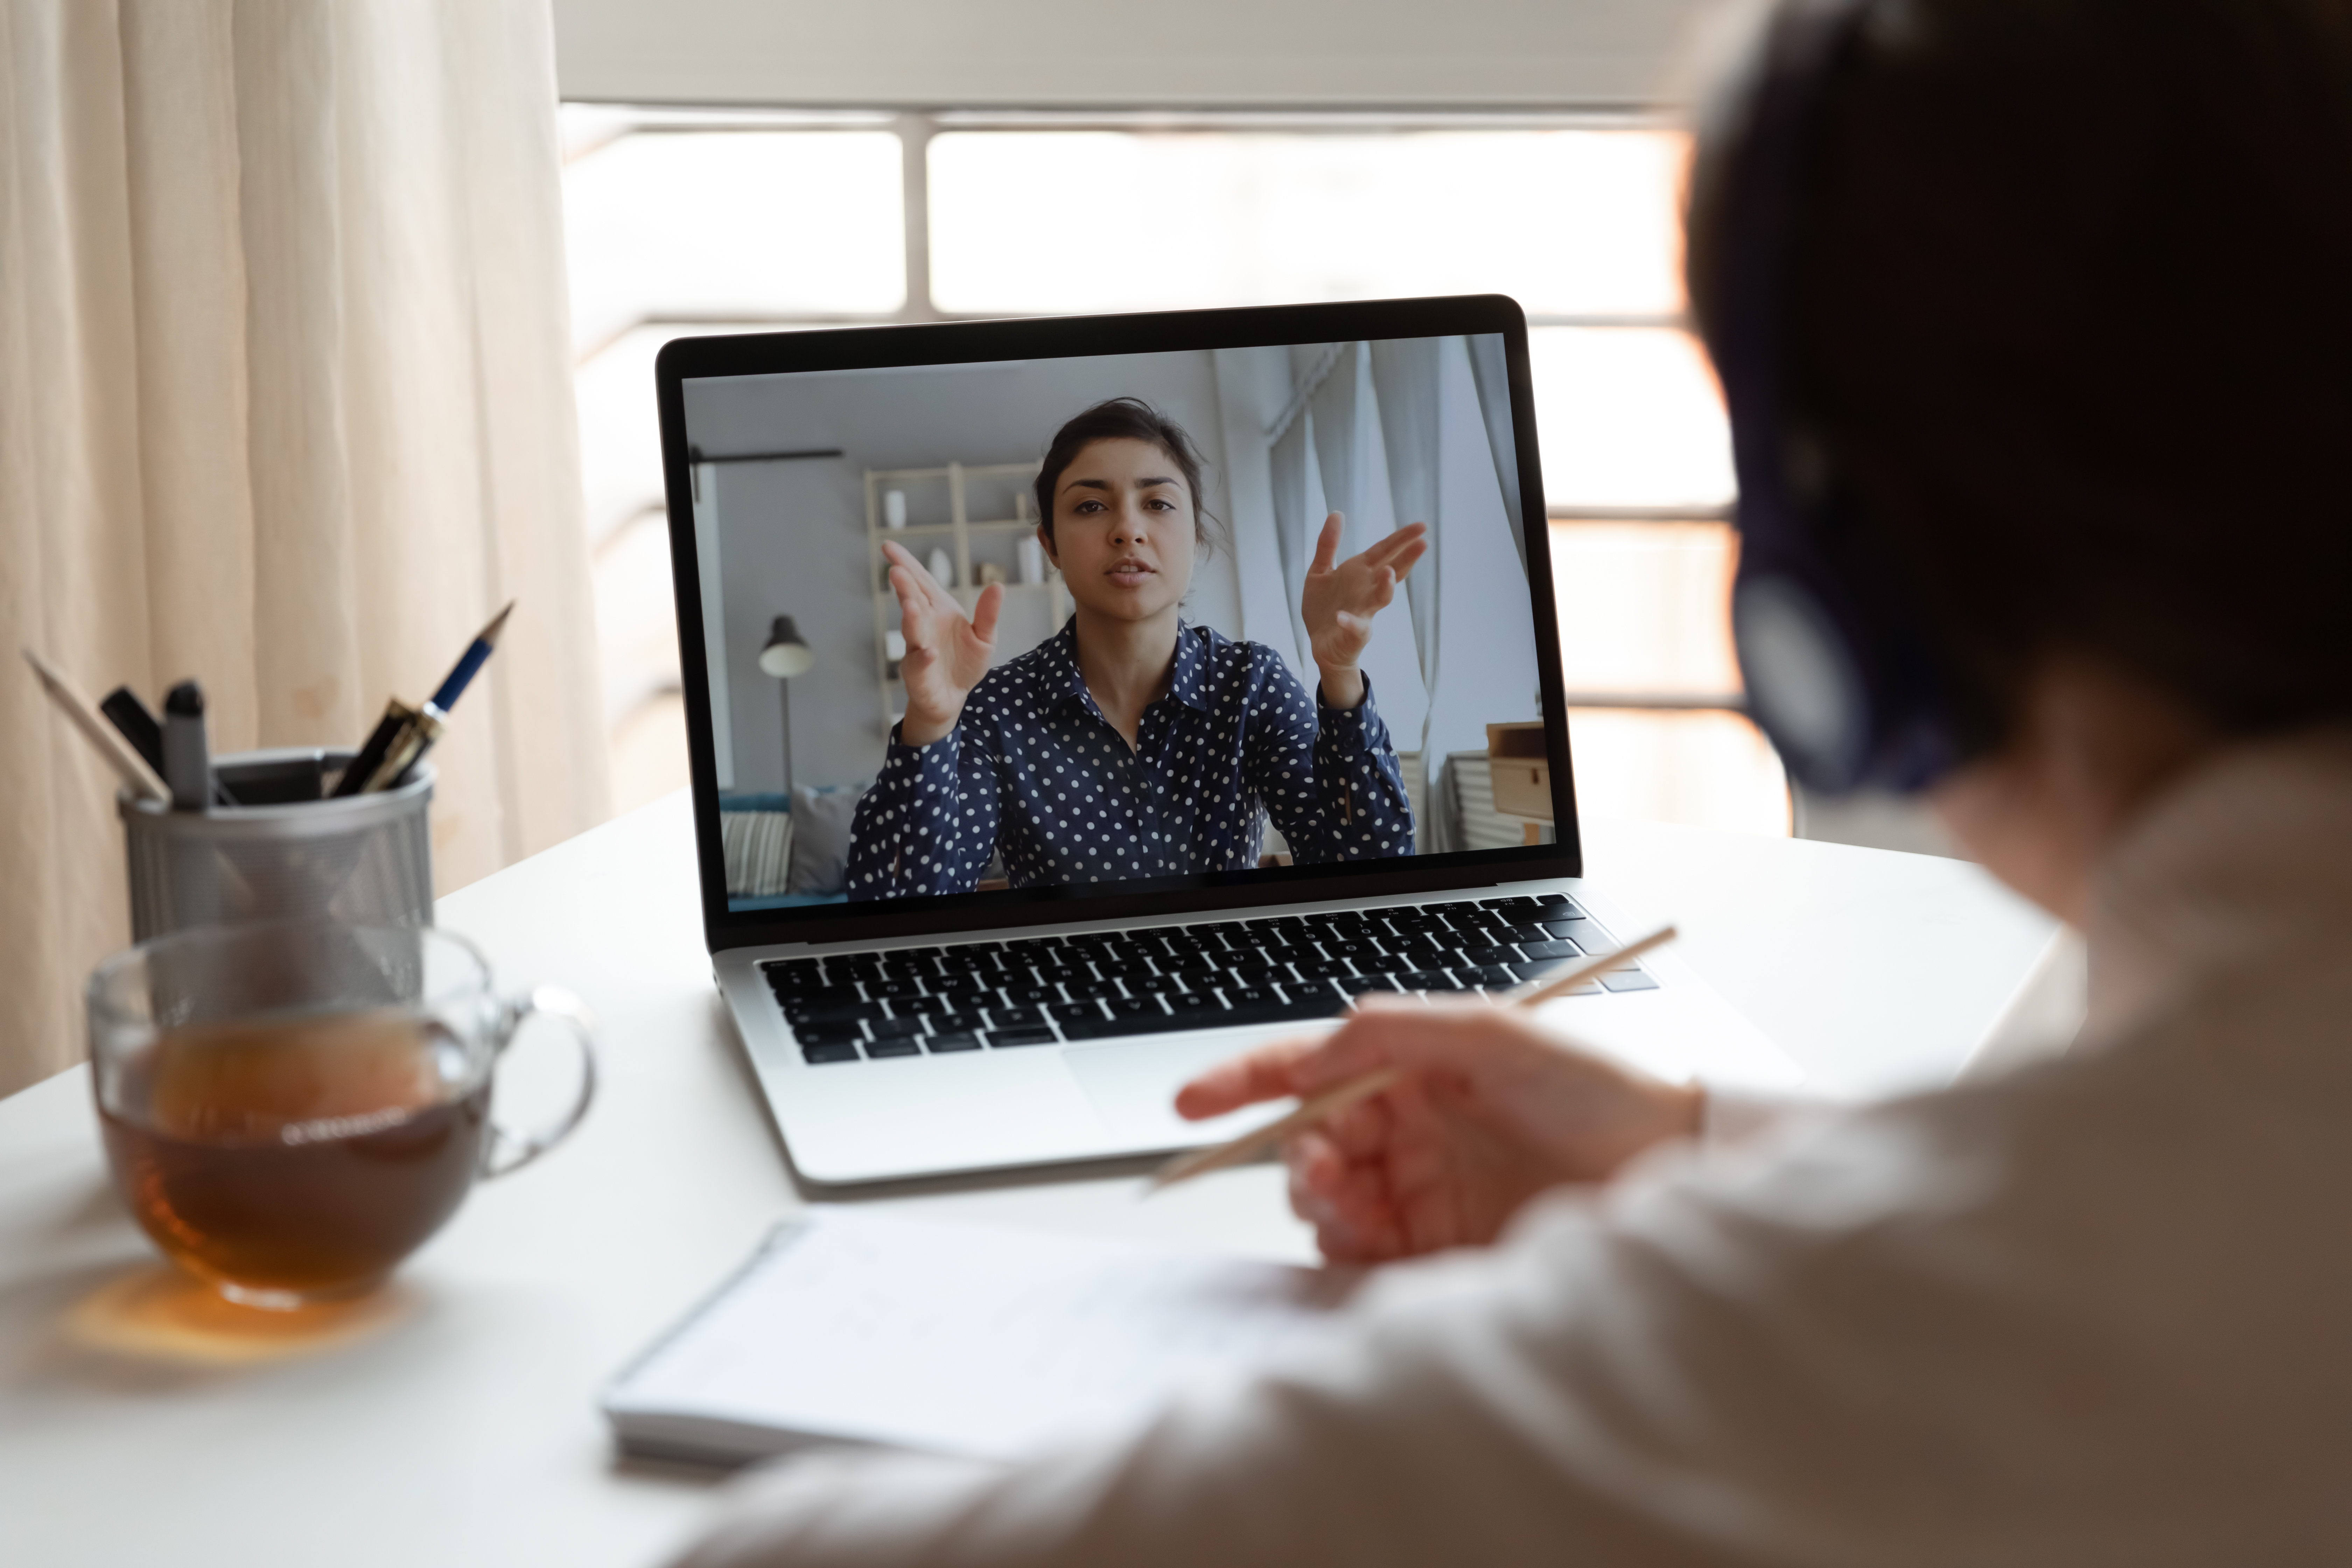 A professional watching a virtual instructor-led training course on a laptop computer